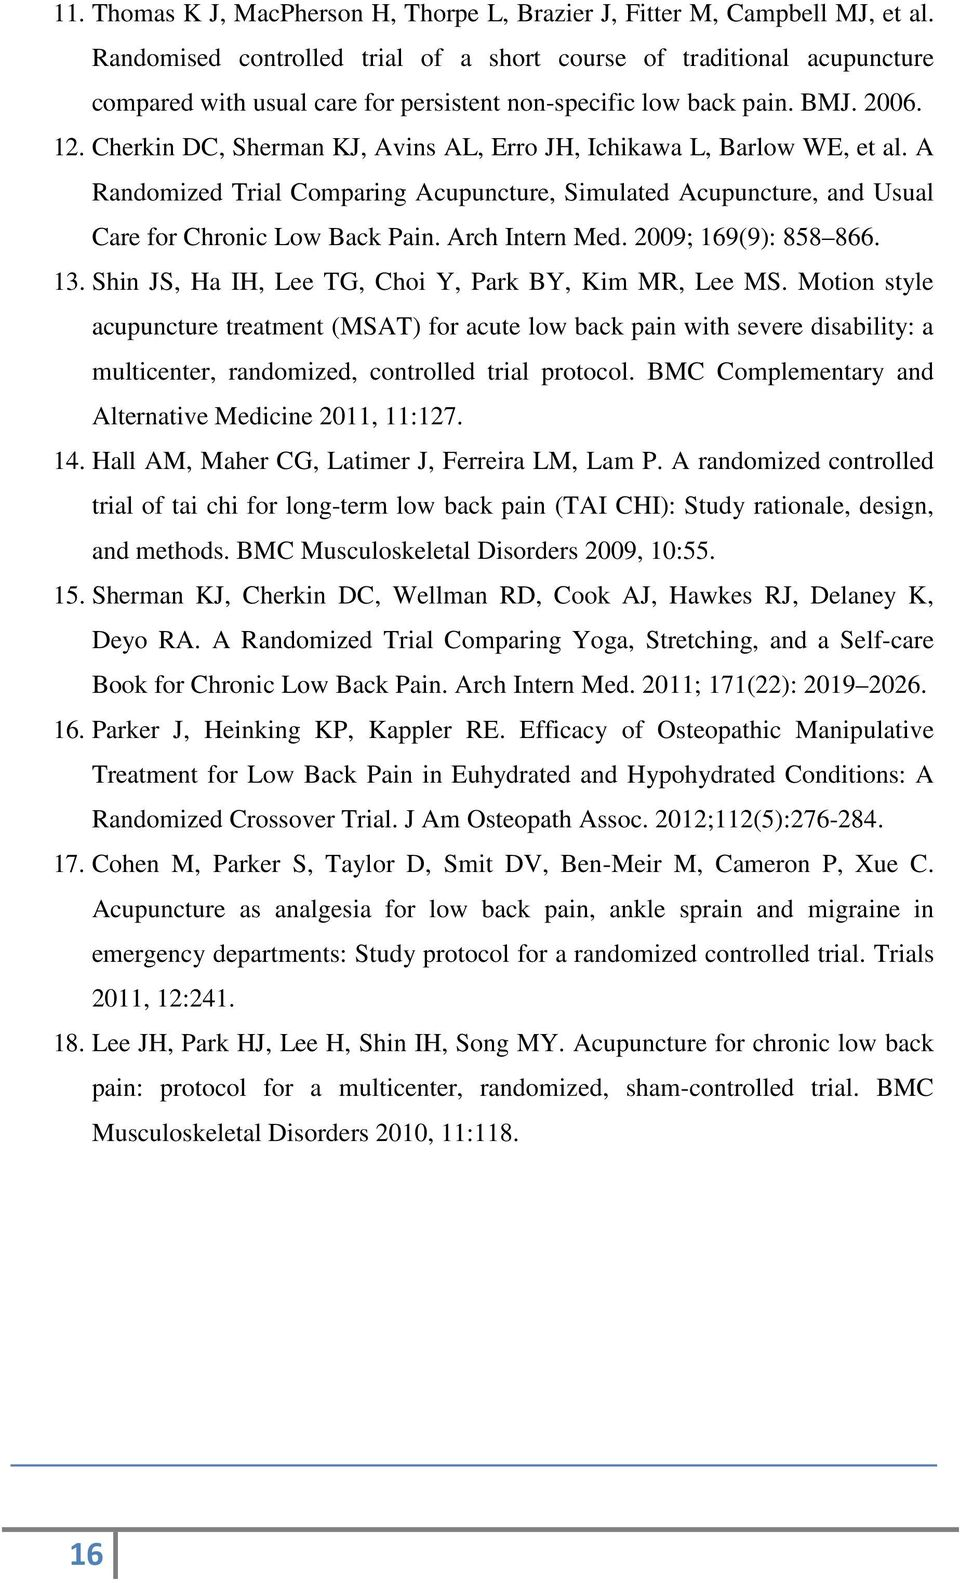 Cherkin DC, Sherman KJ, Avins AL, Erro JH, Ichikawa L, Barlow WE, et al. A Randomized Trial Comparing Acupuncture, Simulated Acupuncture, and Usual Care for Chronic Low Back Pain. Arch Intern Med.